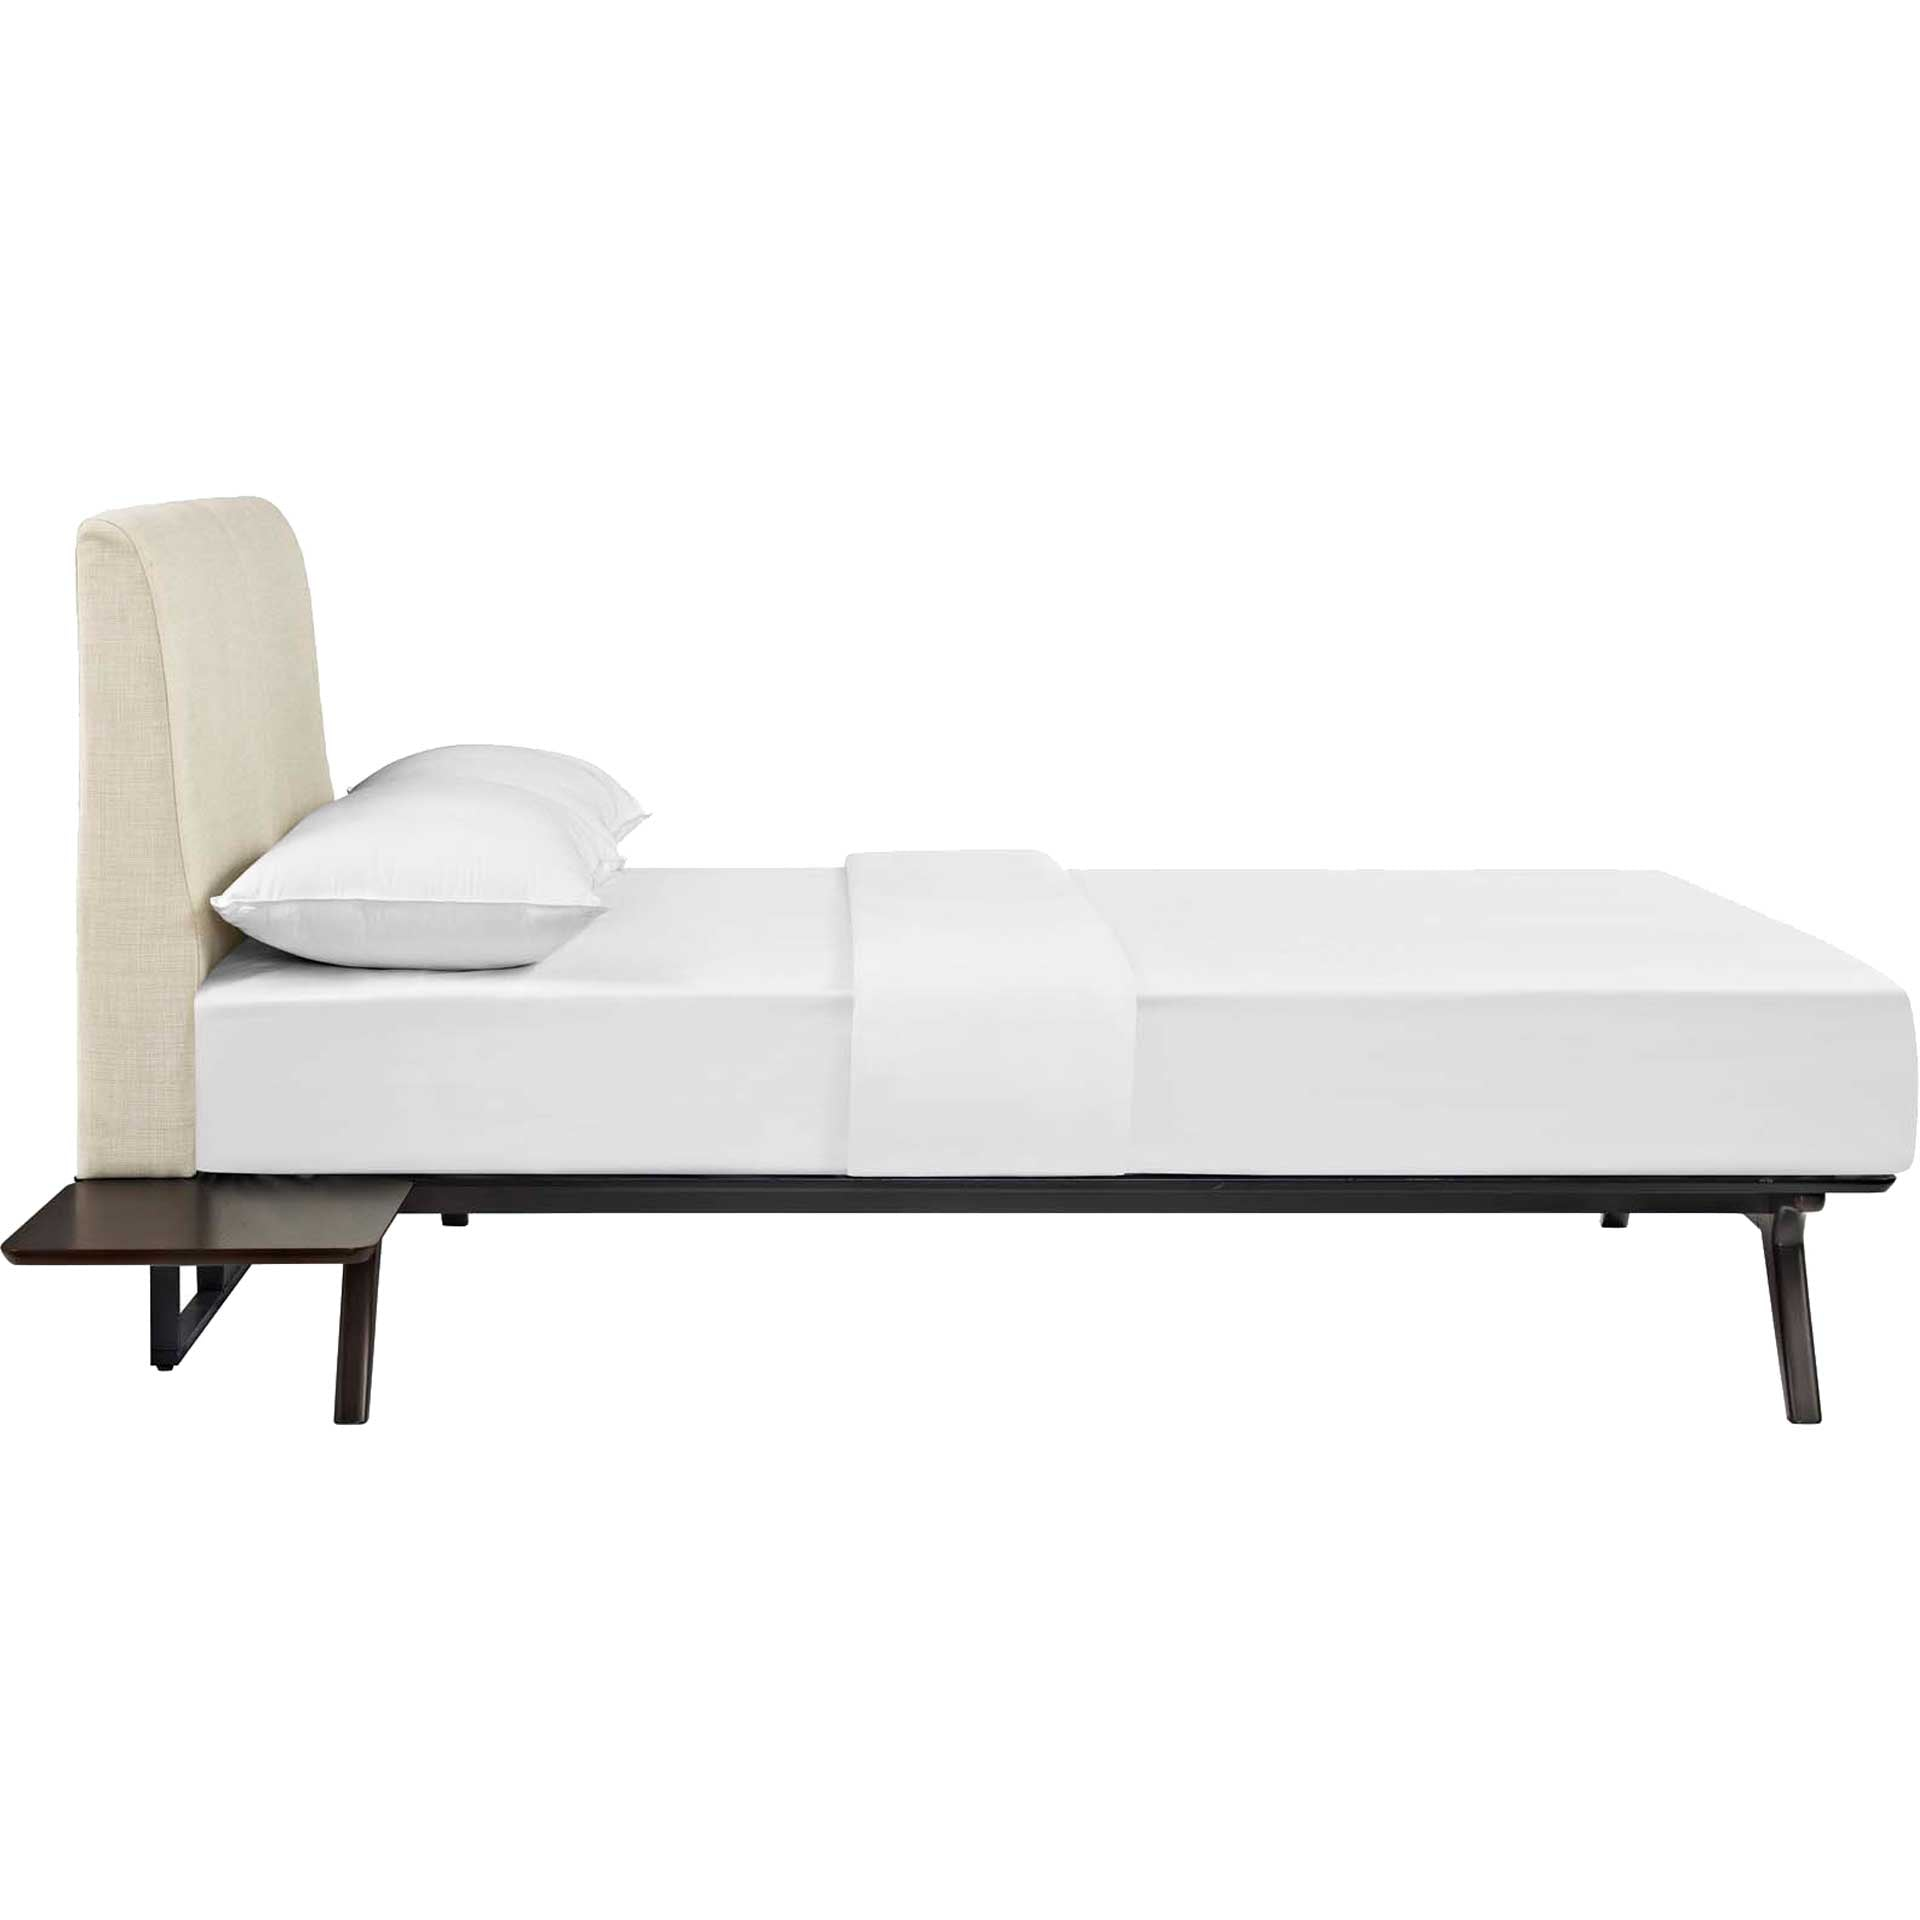 Thames Bed Cappuccino/Beige With Side Tables